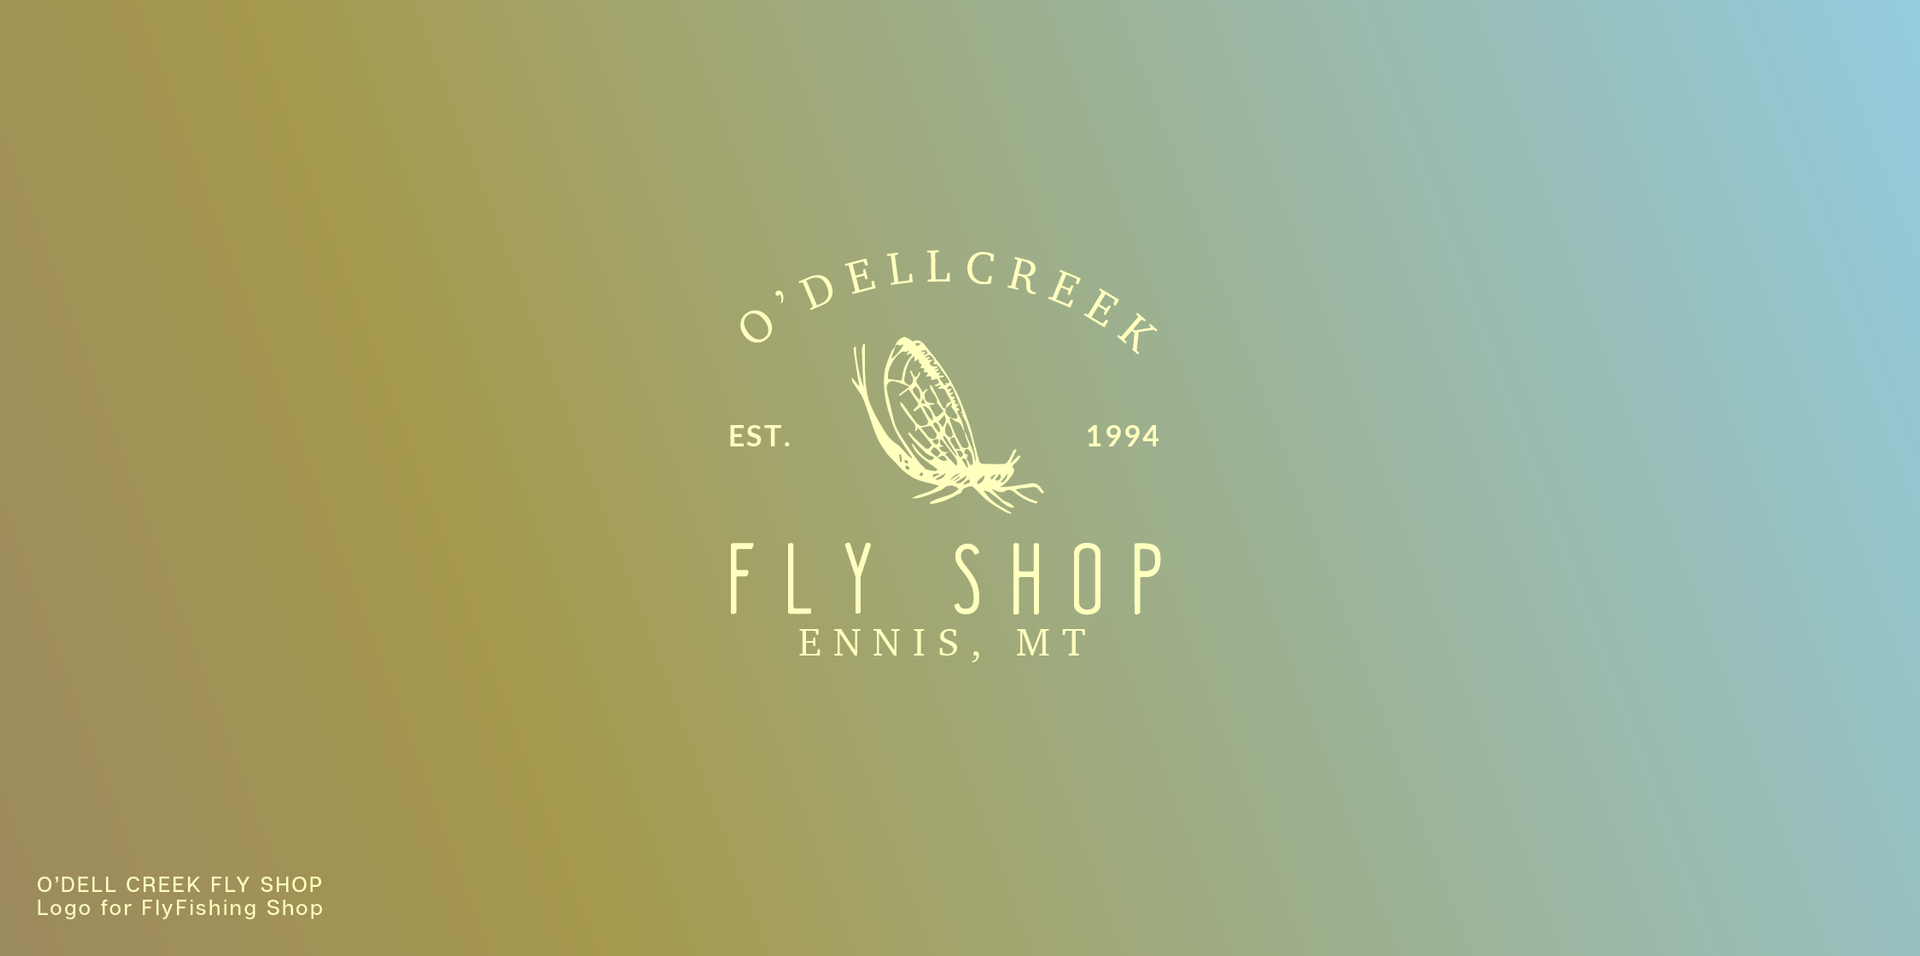 O'Dell Creek Fly Shop